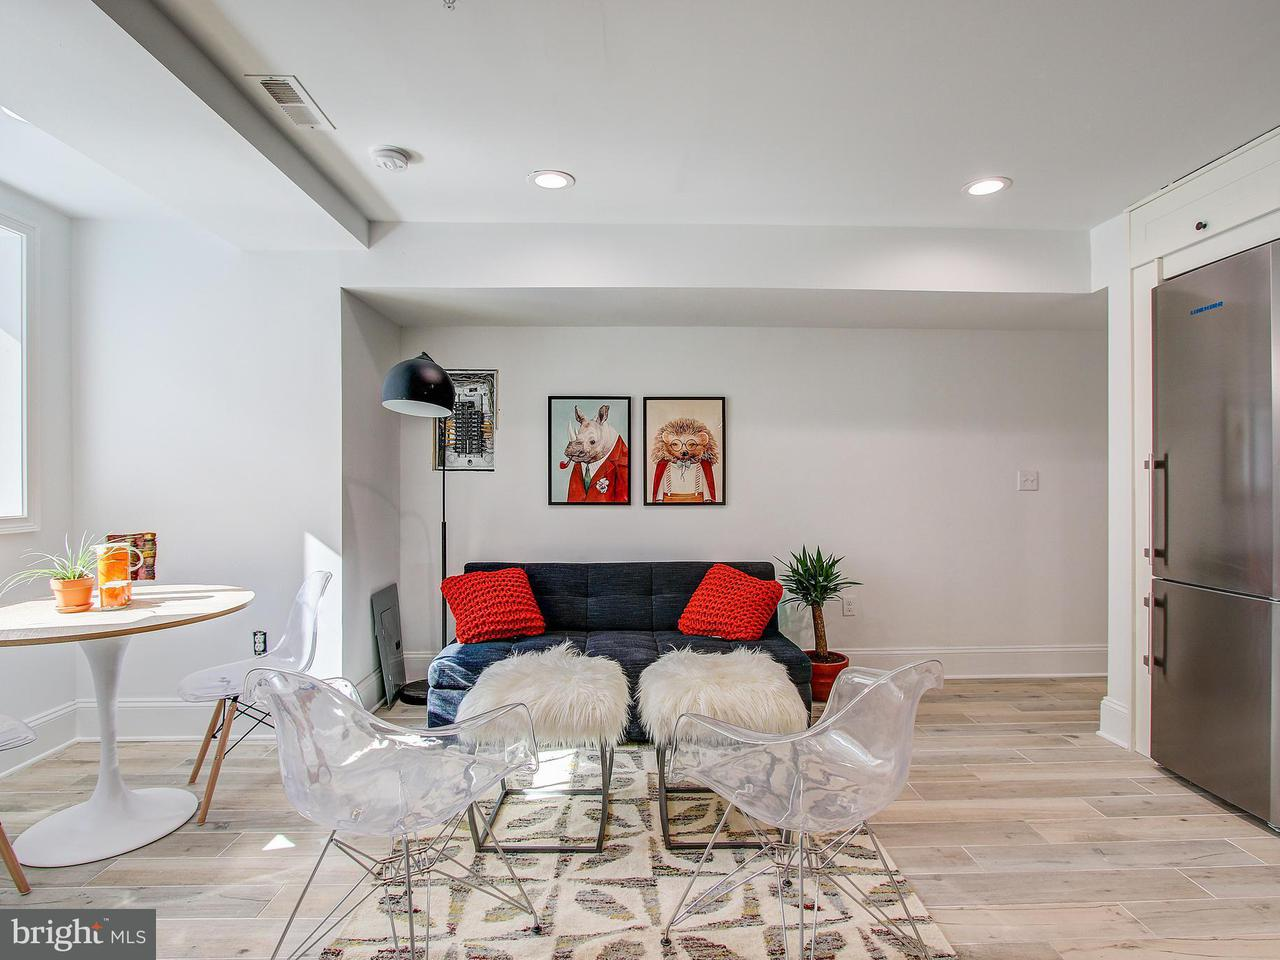 Condominium for Sale at 1723 U St Nw #1 1723 U St Nw #1 Washington, District Of Columbia 20009 United States